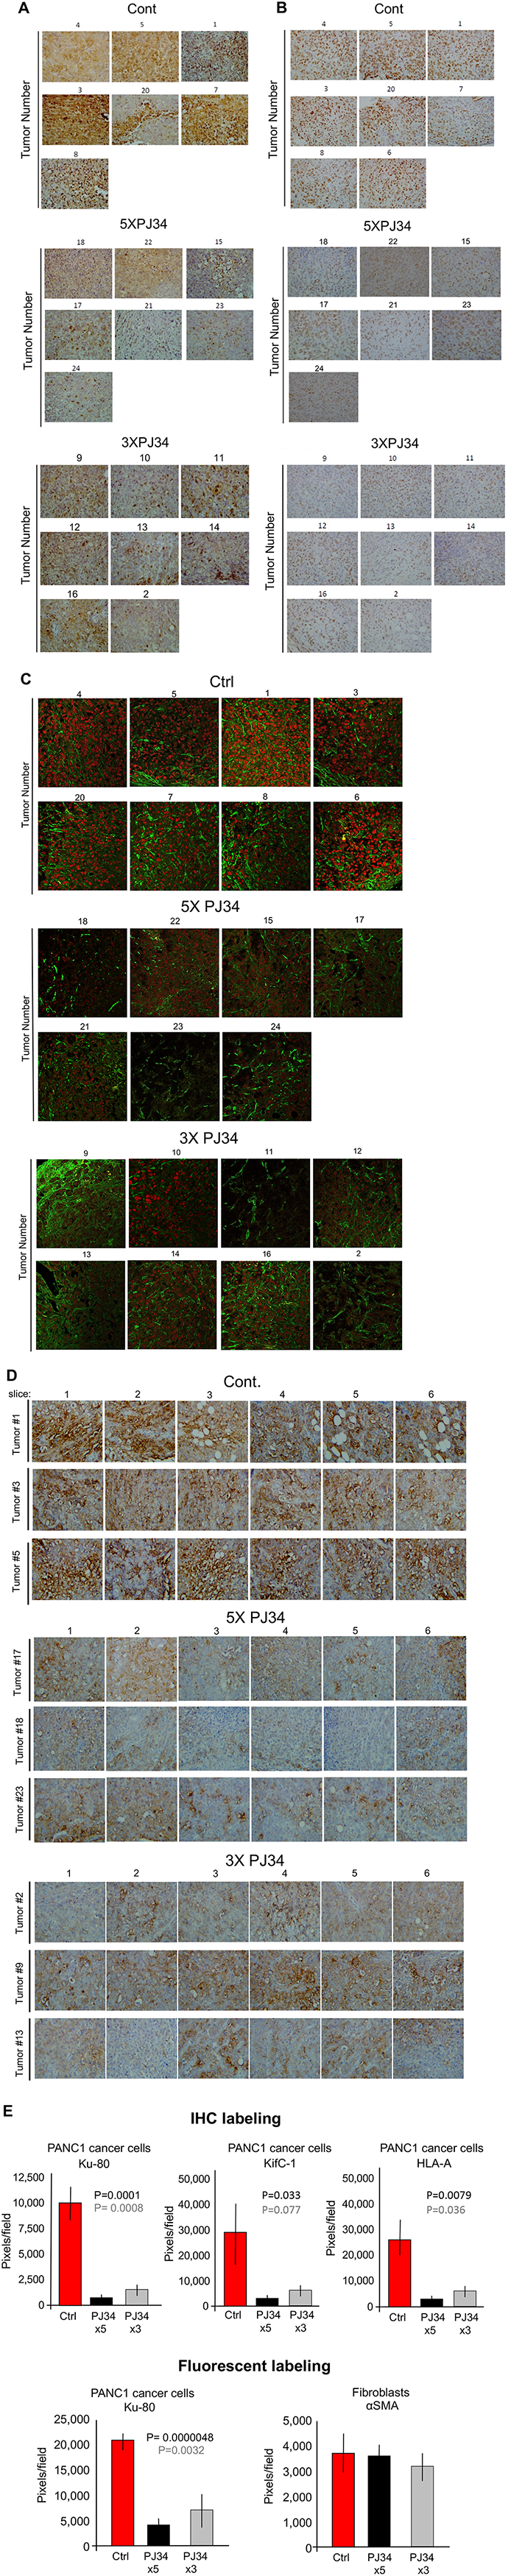 A massive reduction of human proteins in PANC1 xenografts in response to treatment with PJ34.